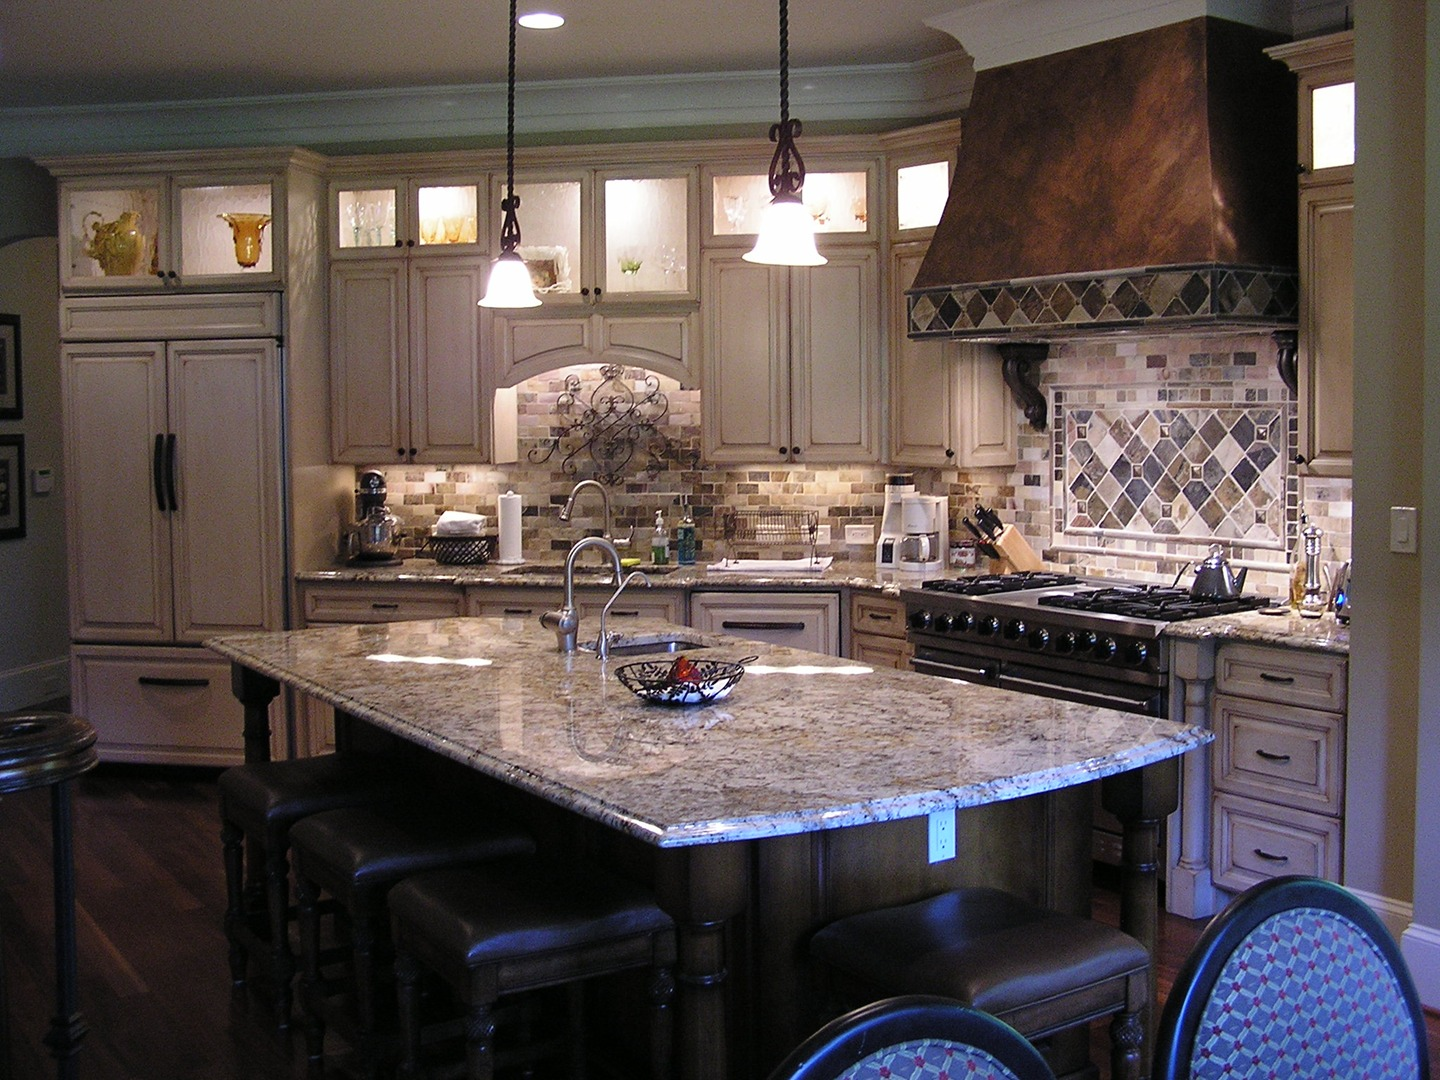 Refinish kitchen cabinets charlotte nc - Kitchen Cabinets Design Bathroom Cabinets Curtis Cabinets Charlotte Nc